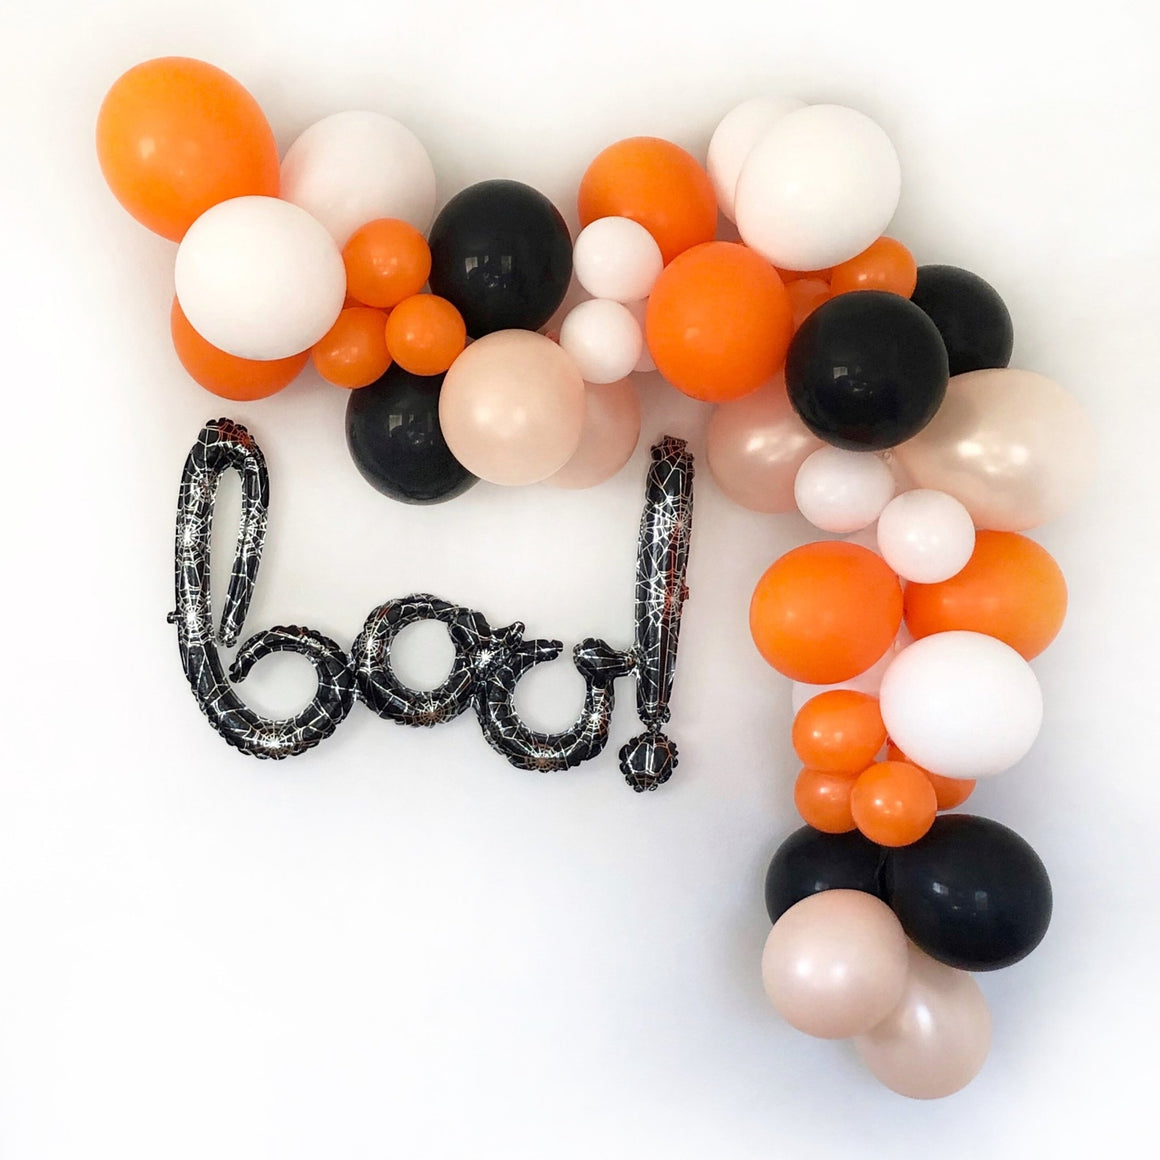 Boo Halloween Balloon Garland Kit - Pretty Collected